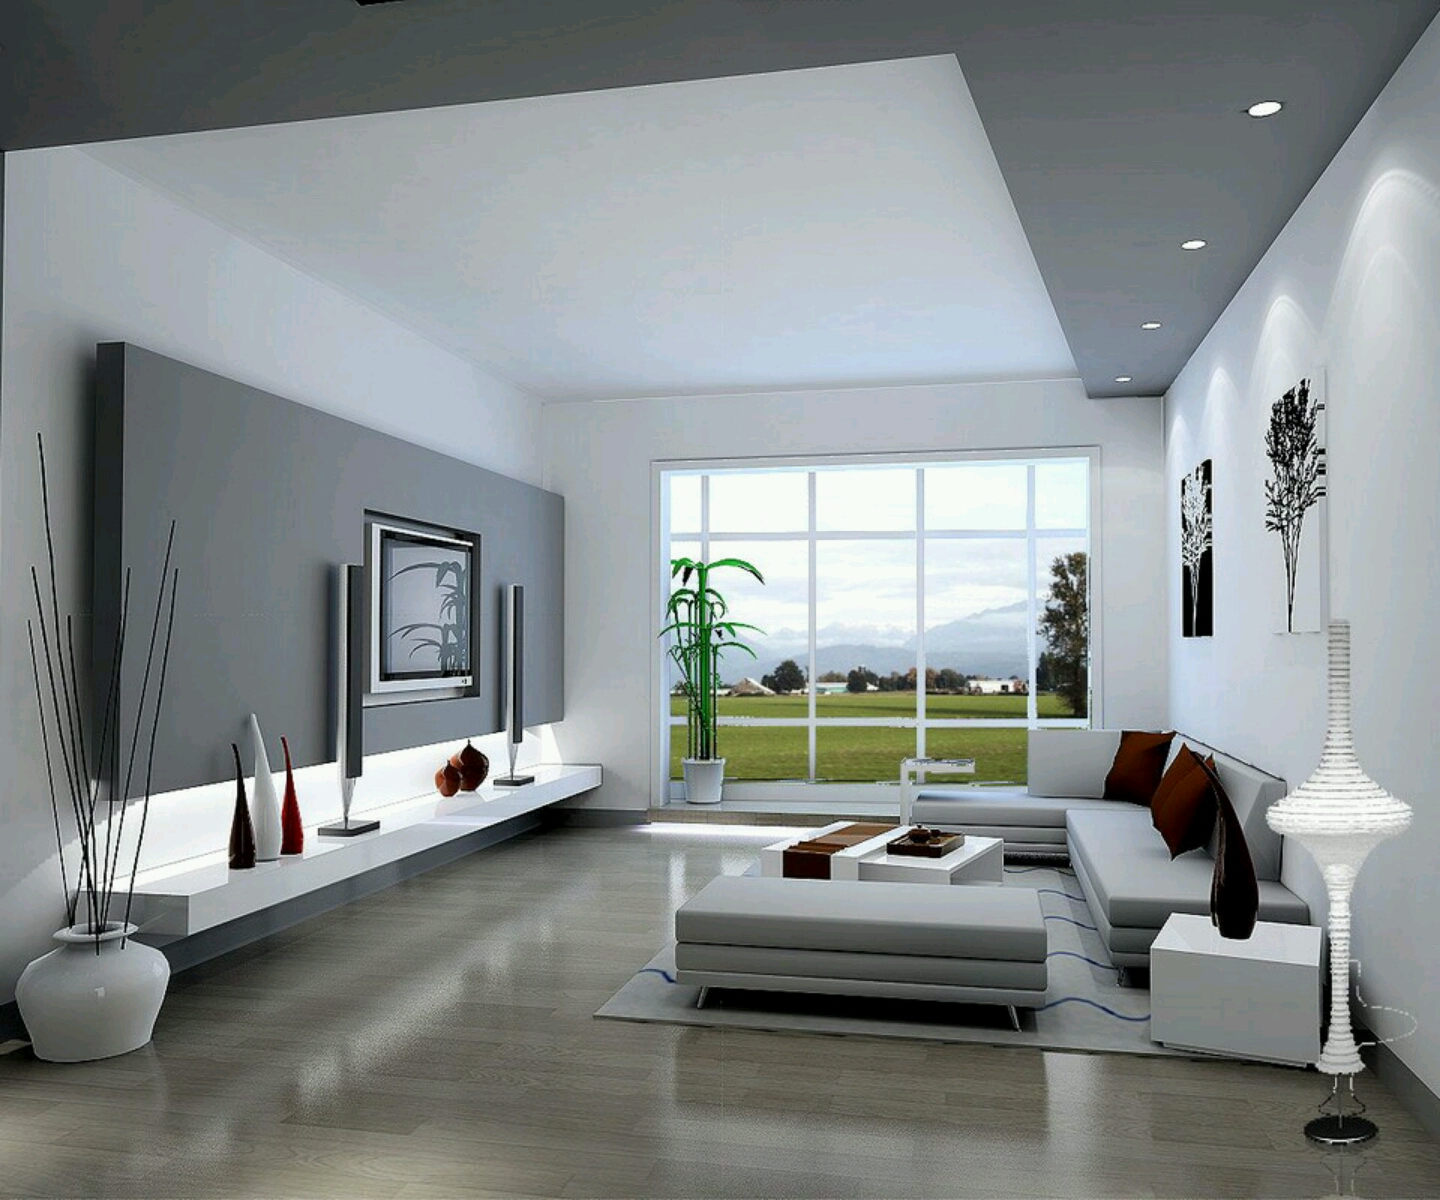 New home designs latest modern living rooms interior for Modern interior home designs ideas